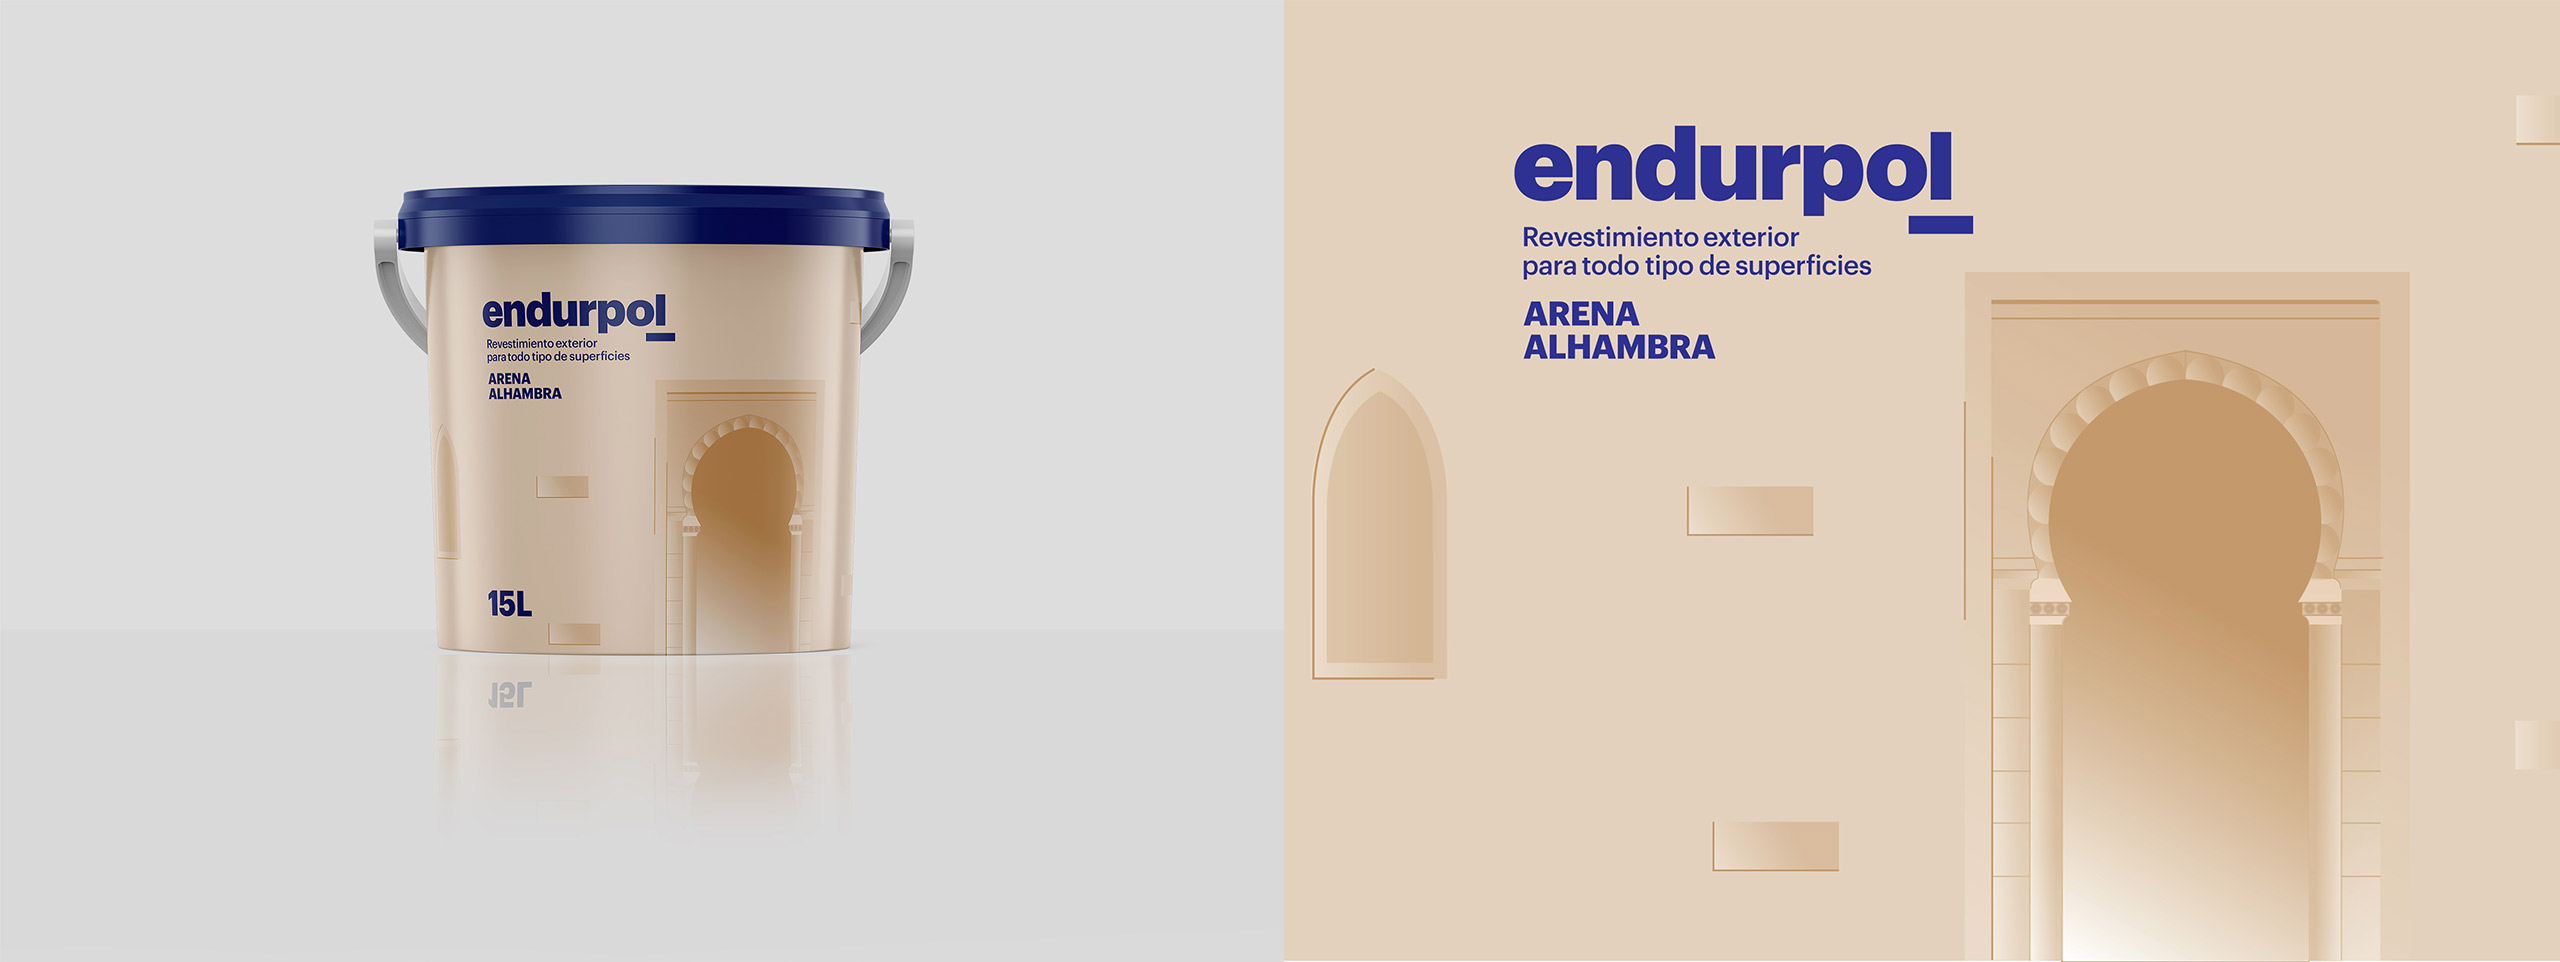 marinagoni-endurpol-packaging-pintura-arena